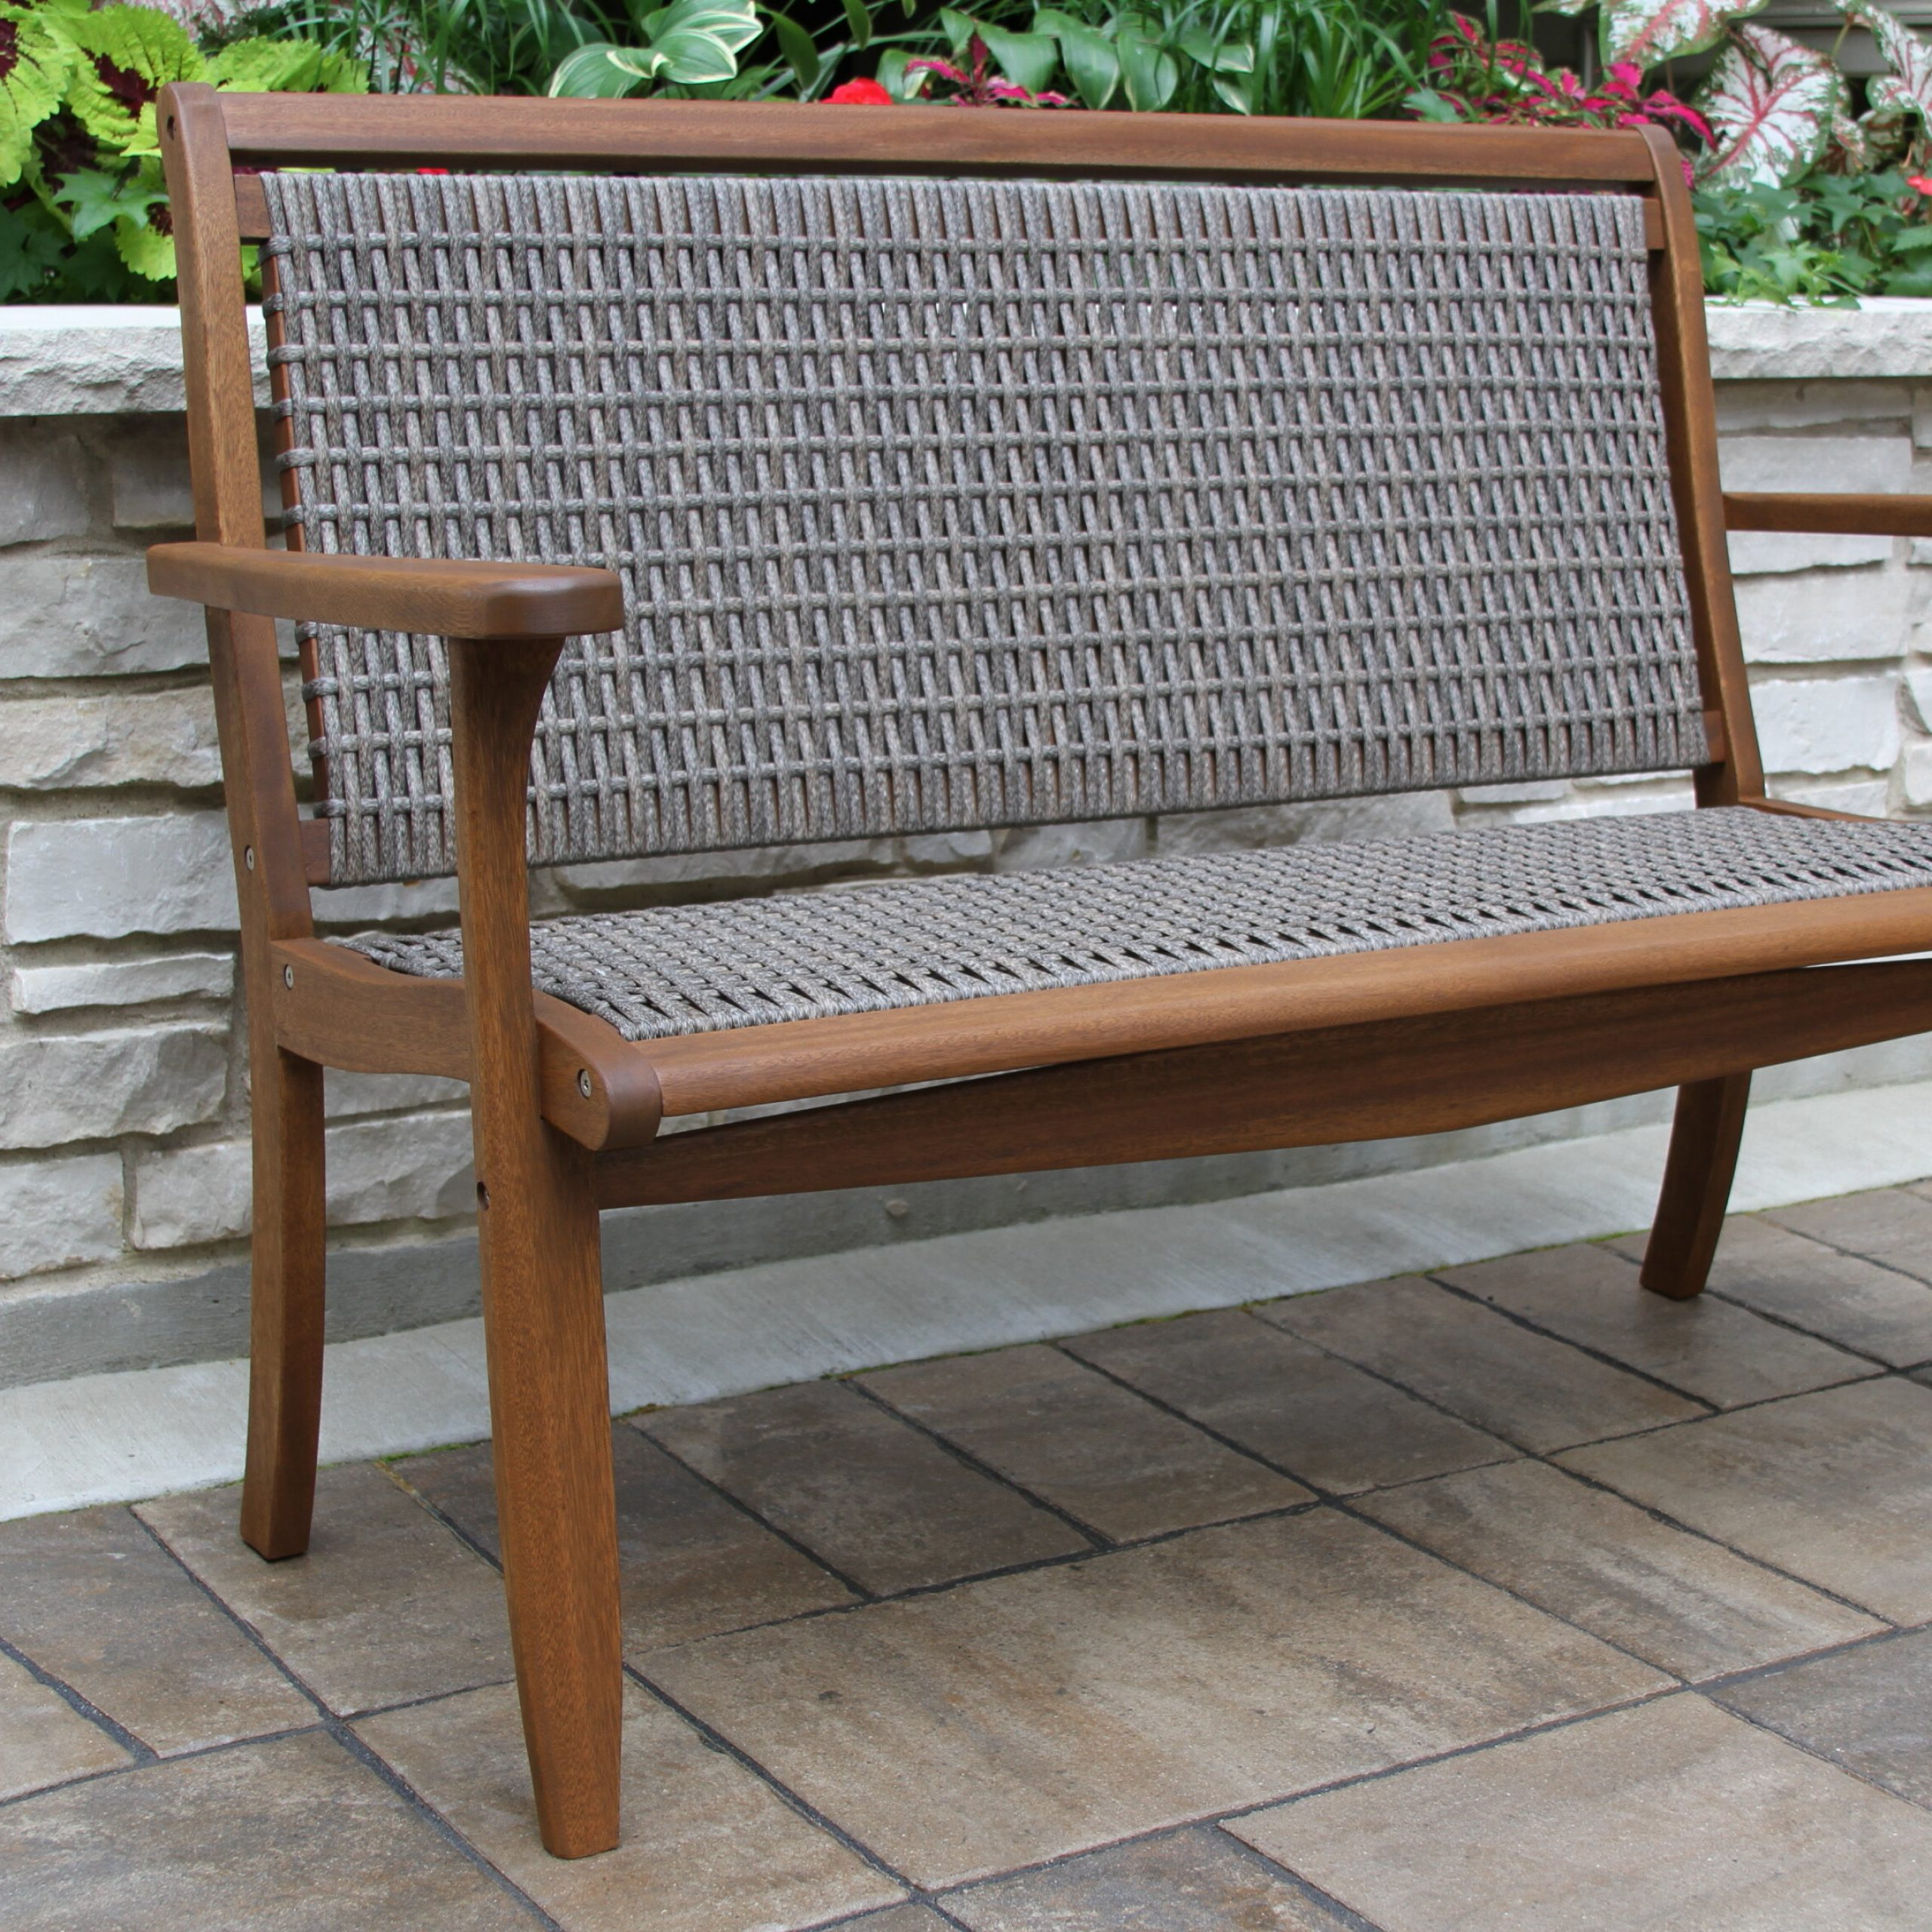 Most Popular Liya Garden Bench Inside Shelbie Wooden Garden Benches (View 13 of 30)